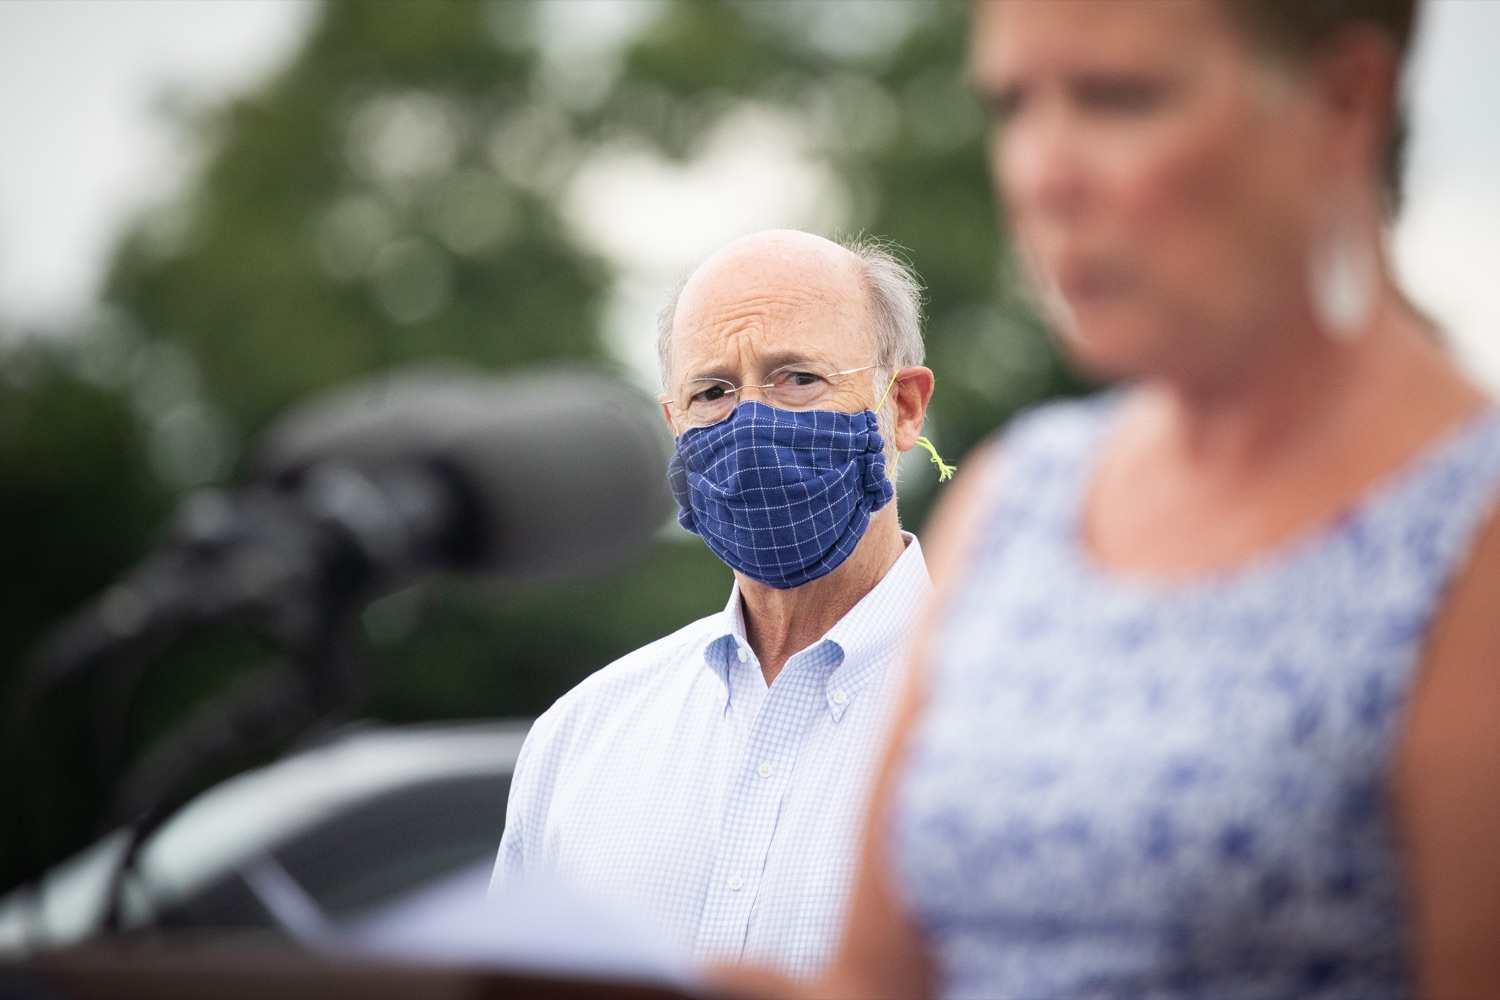 """<a href=""""https://filesource.wostreaming.net/commonwealthofpa/photo/18166_gov_cares_act_dz_12.jpg"""" target=""""_blank"""">⇣Download Photo<br></a>Pennsylvania Governor Tom Wolf listening to speakers at the announcement.  Today, Governor Tom Wolf announced the availability of $50 million in grant funding to help employers provide hazard pay to employees in life-sustaining occupations during the COVID-19 pandemic. Hazard pay is intended to keep front-line employees working in vital industry sectors across Pennsylvania.  Harrisburg, PA  July 16, 2020"""